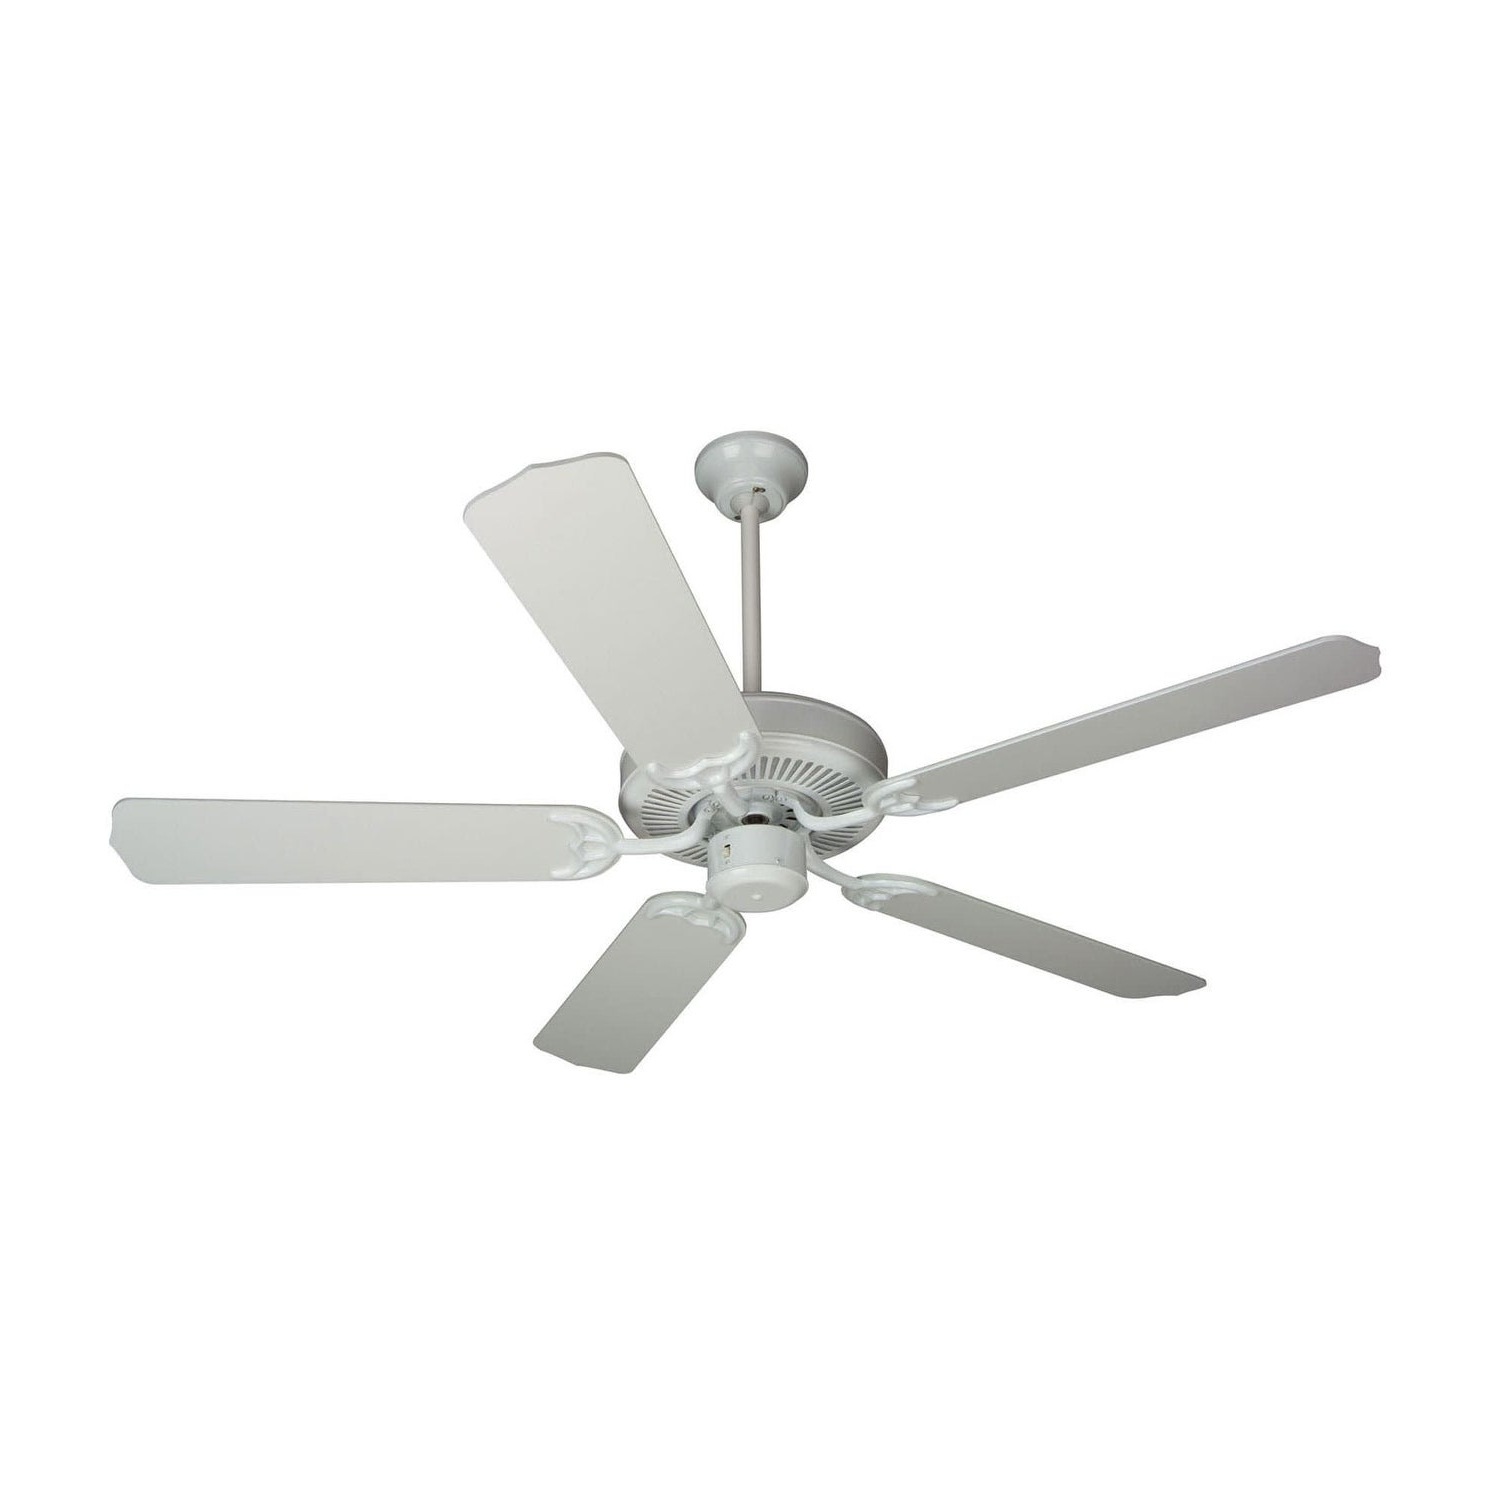 "Craftmade K10621 Contractor's Design 52"" 5 Blade Energy Star Indoor Ceiling  Fan – Blades Included With Recent Contractor 5 Blade Ceiling Fans (View 9 of 20)"